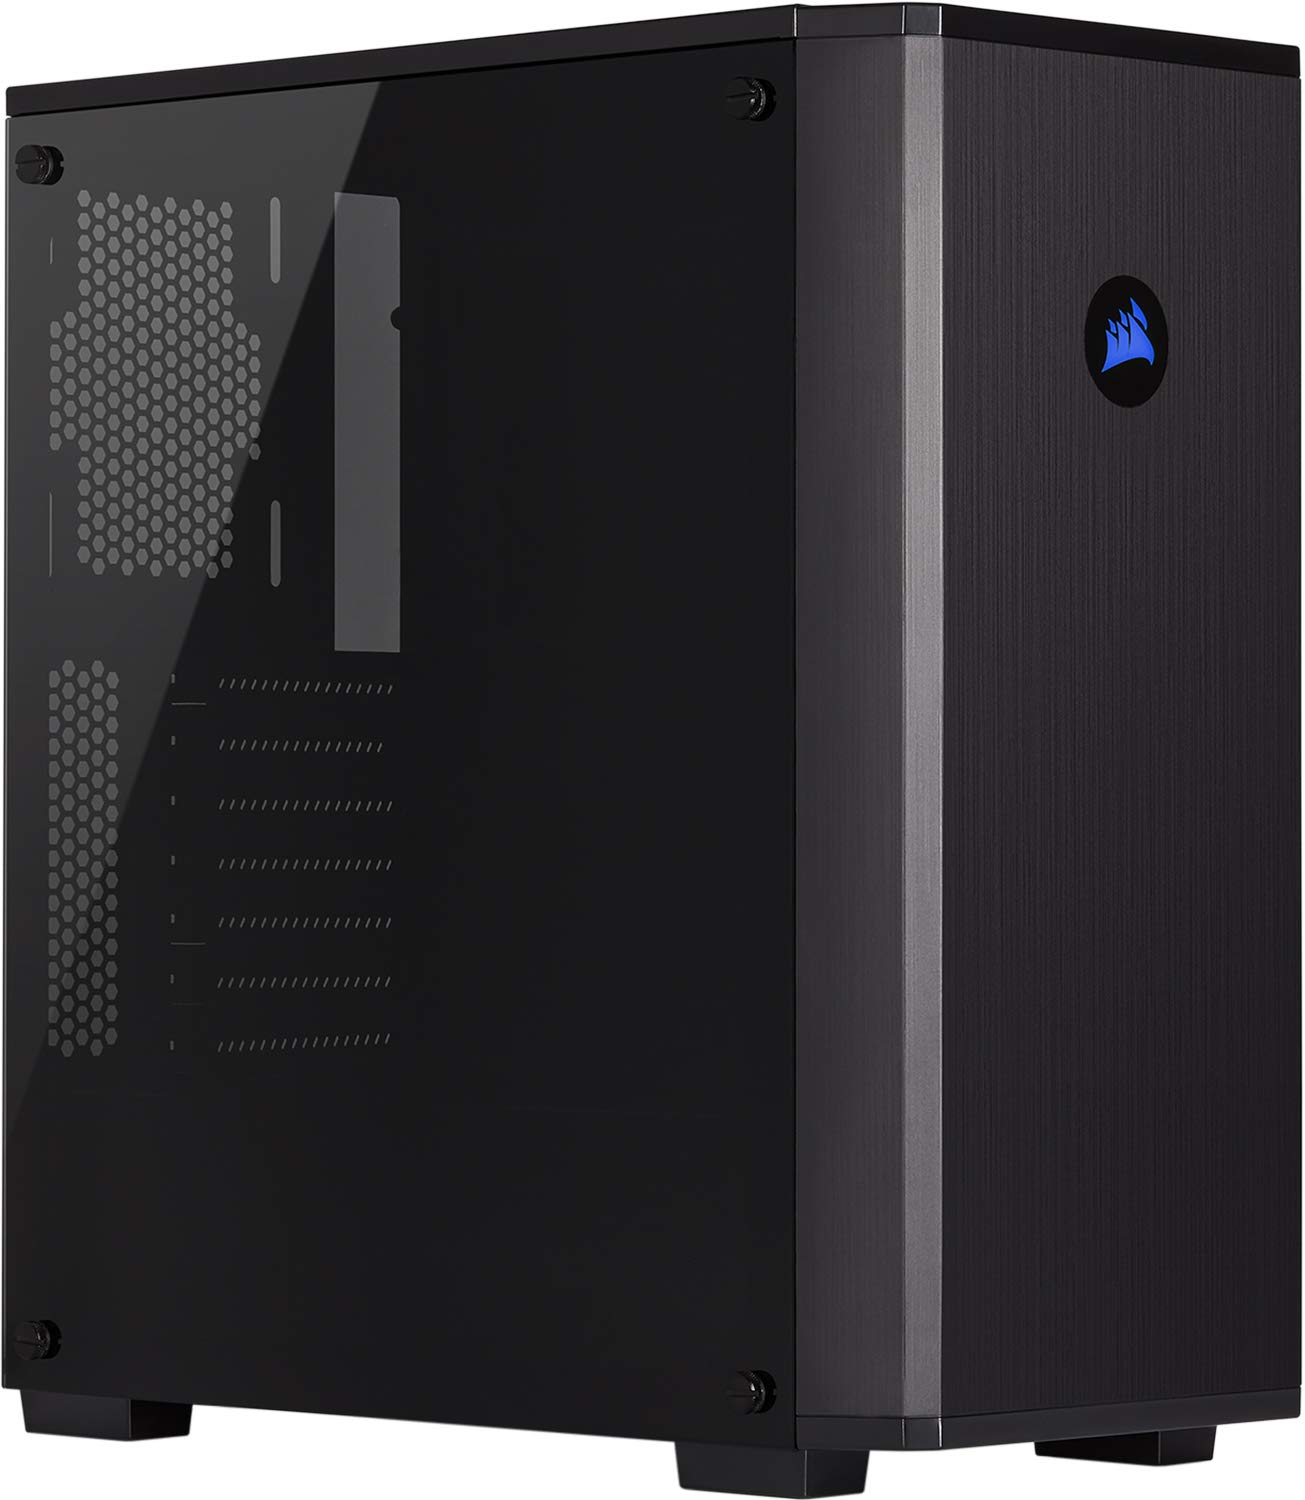 8 Case - Corsair Carbide Series 175R RGB Tempered Glass Mid-Tower - Best $700 PC Build 2019